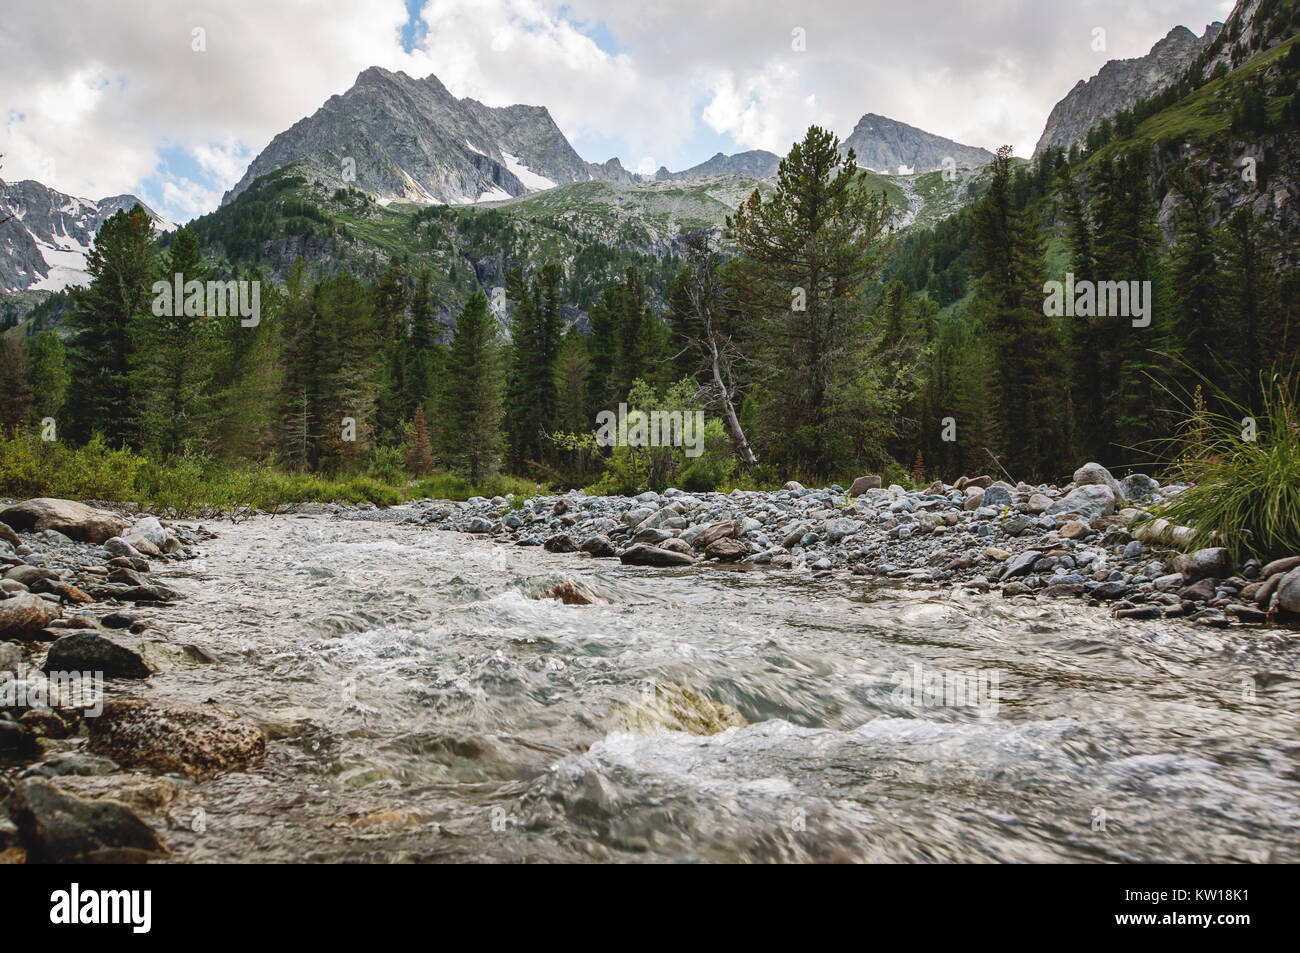 beautiful mountain river with rapid flow. Altai landmark and beauty place. - Stock Image